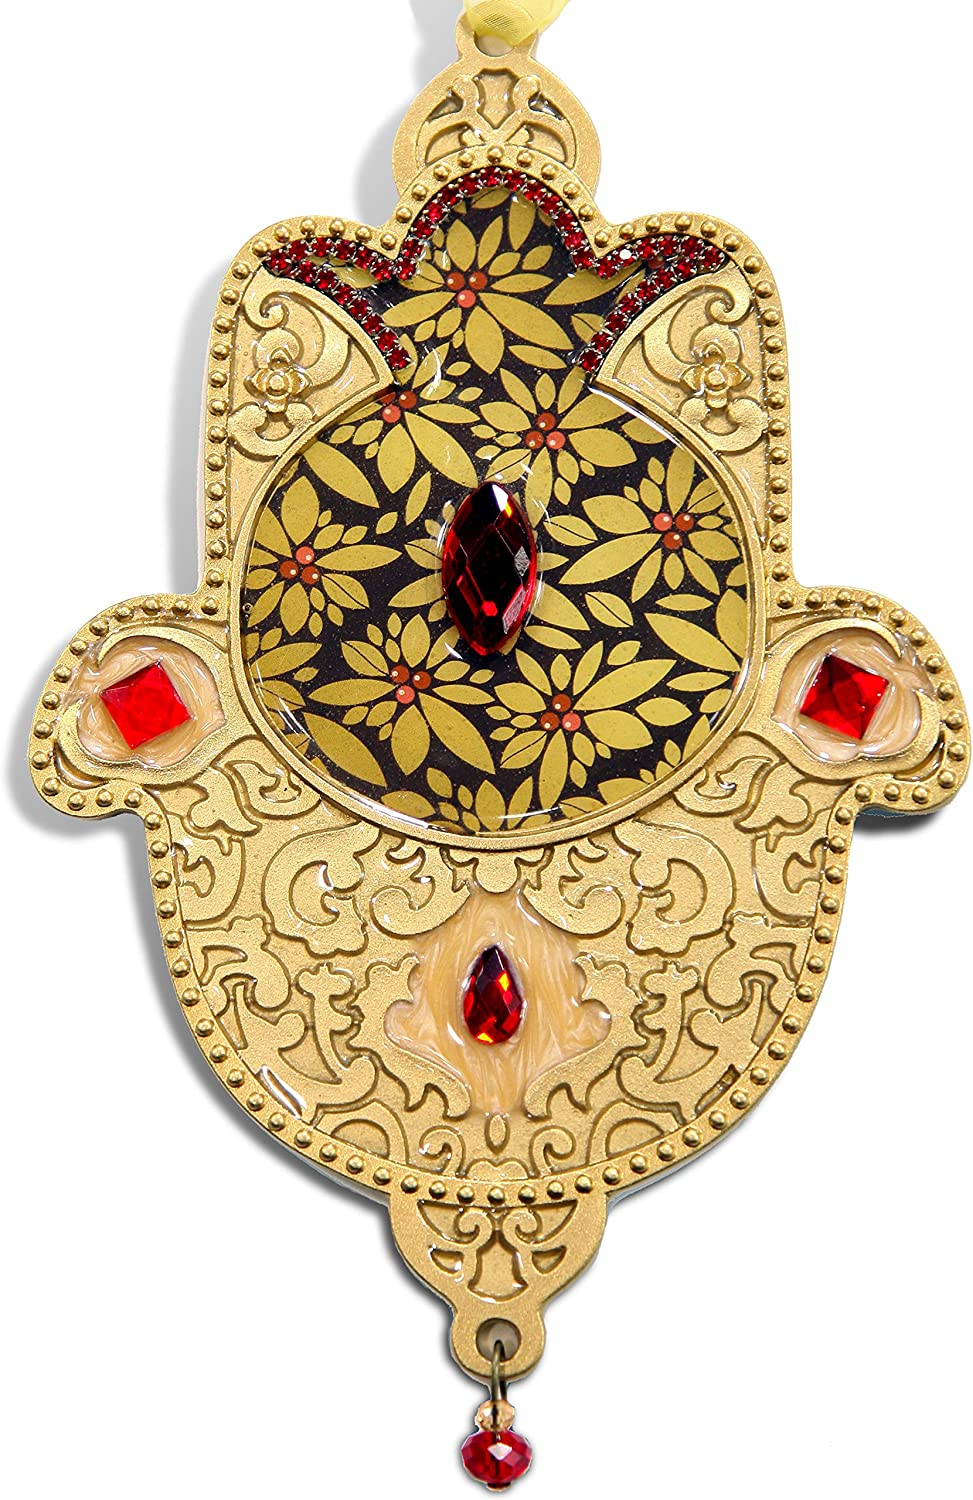 Hamsa wall decor, Wall Hanging Art, Handcrafted in Unique Design, Home Jewelry, Bohemian Style, Judaica Gift, Hand of Miriam, Hand of Fatima, For Home Blessing And Great Fortune, Wall Hamsa Gold Color